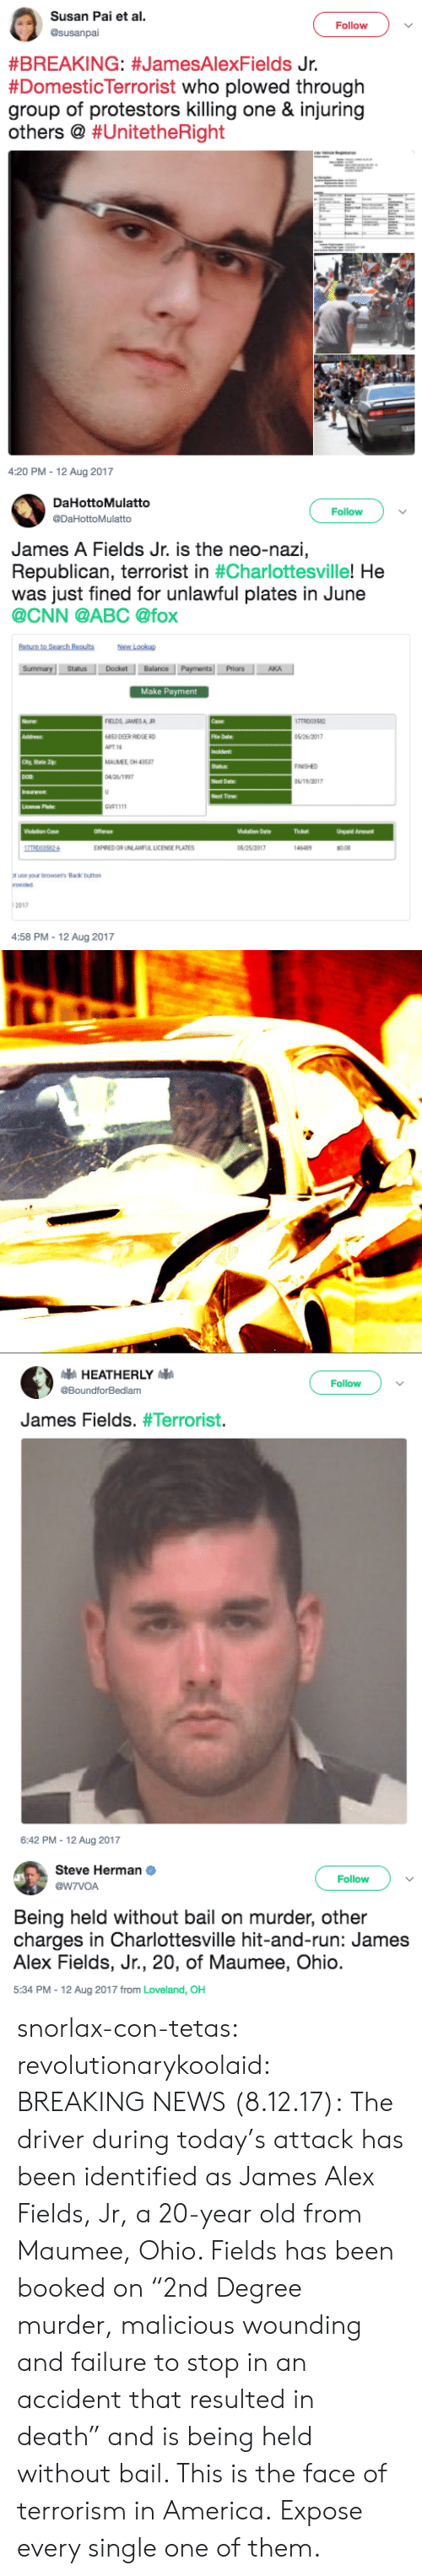 """Abc, America, and cnn.com: Susan Pai et al  Follow  #BREAKING: #JamesAlexFields Jr.  #Domesticlerrorist who plowed through  group of protestors killing one & injuring  others @ #Un.tetheRight  4:20 PM-12 Aug 2017   DaHottoMulatto  @DaHottoMulatto  Follow  James A Fields Jr. is the neo-nazi,  Republican, terrorist in #Charlottesville,He  was just fined for unlawful plates in June  @CNN @ABC @fox  New Lookup  StatusDocket Balance  Priors  Make Payment  FIELDS JAMESA R  6853 DEER RIDGE RD  АРТН  MAUMEE OH 4353  5 26/2017  NISHED  Next Date  Next Time  GVF1111  Ticket  Unpeid Amount  EXPIREDOR UNLAWFUIL LICENSE PLATES  0.00  ot use your browsers Back button  2017  4:58 PM-12 Aug 2017   Follow  @BoundforBedlam  James Fields. #Terrorist·  6:42 PM-12 Aug 2017   Steve Herman  @W7VOA  Follow  Being held without bail on murder, other  charges in Charlottesville hit-and-run: James  Alex Fields, Jr., 20, of Maumee, Ohio  5:34 PM-12 Aug 2017 from Loveland, OH snorlax-con-tetas: revolutionarykoolaid:   BREAKING NEWS (8.12.17):The driver during today's attack has been identified as James Alex Fields, Jr, a 20-year old from Maumee, Ohio. Fields has been booked on """"2nd Degree murder, malicious wounding and failure to stop in an accident that resulted in death"""" and is being held without bail.  This is the face of terrorism in America.   Expose every single one of them."""